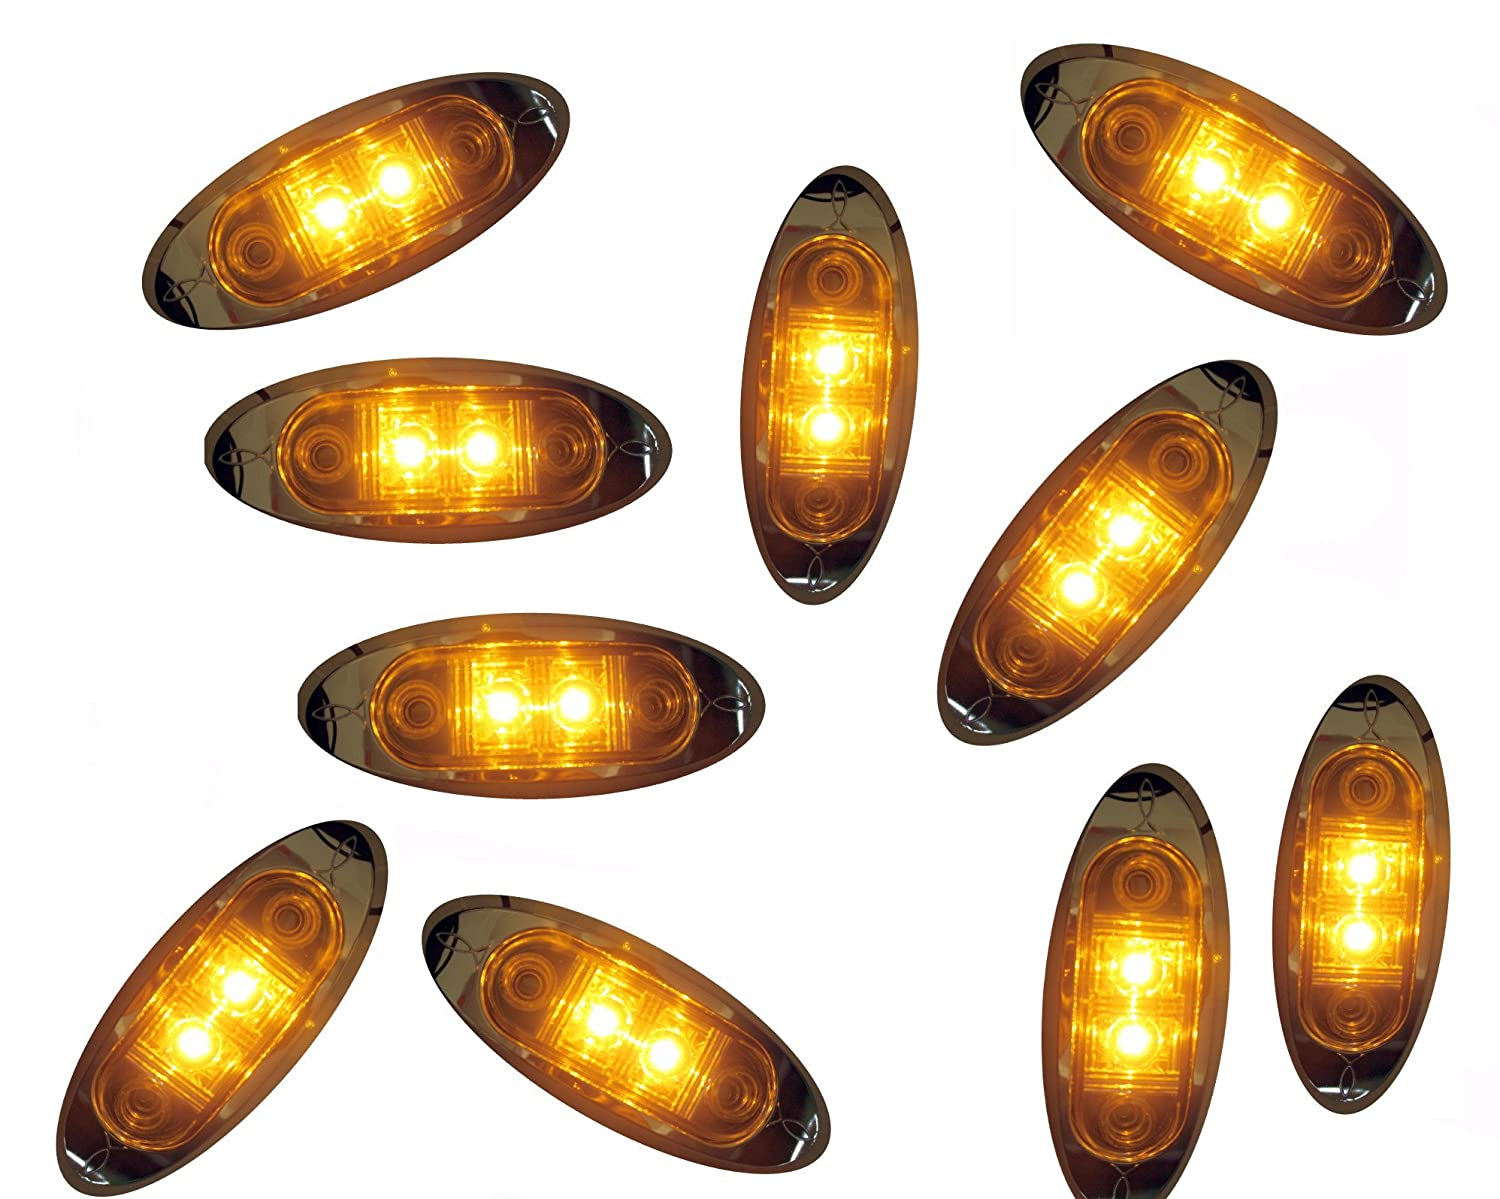 KT Pack of 10 Amber Oval LED Clearance Side Marker Light with Clear Lens Chrome Bezel for TRUCK TRAILER AutoSmart 2' 10KL-15114C-AE